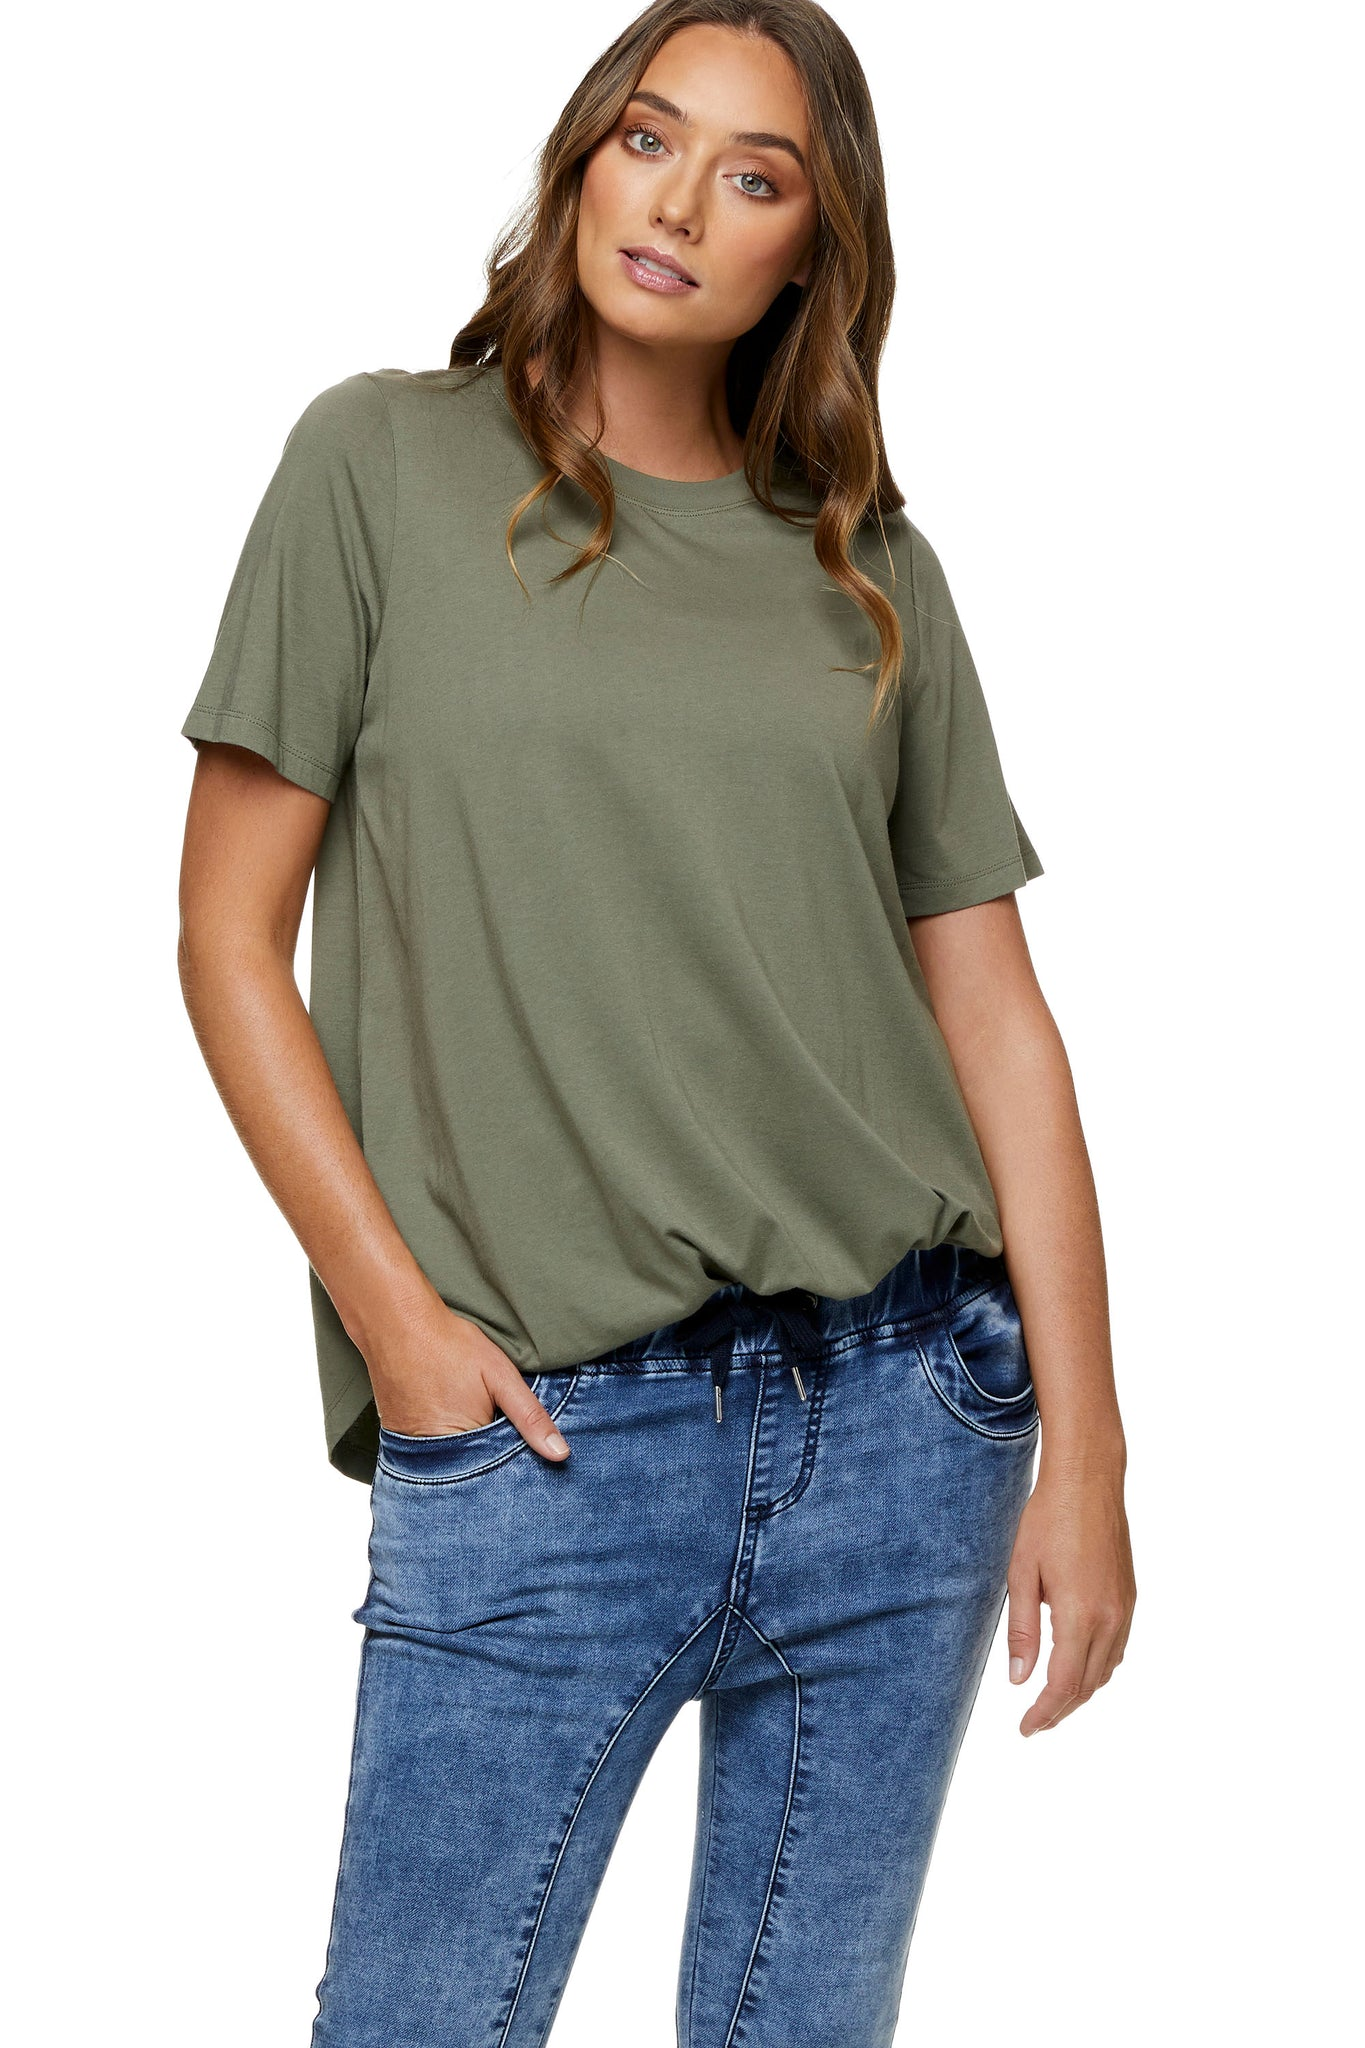 Khaki maternity t-shirt - Maternity top 8